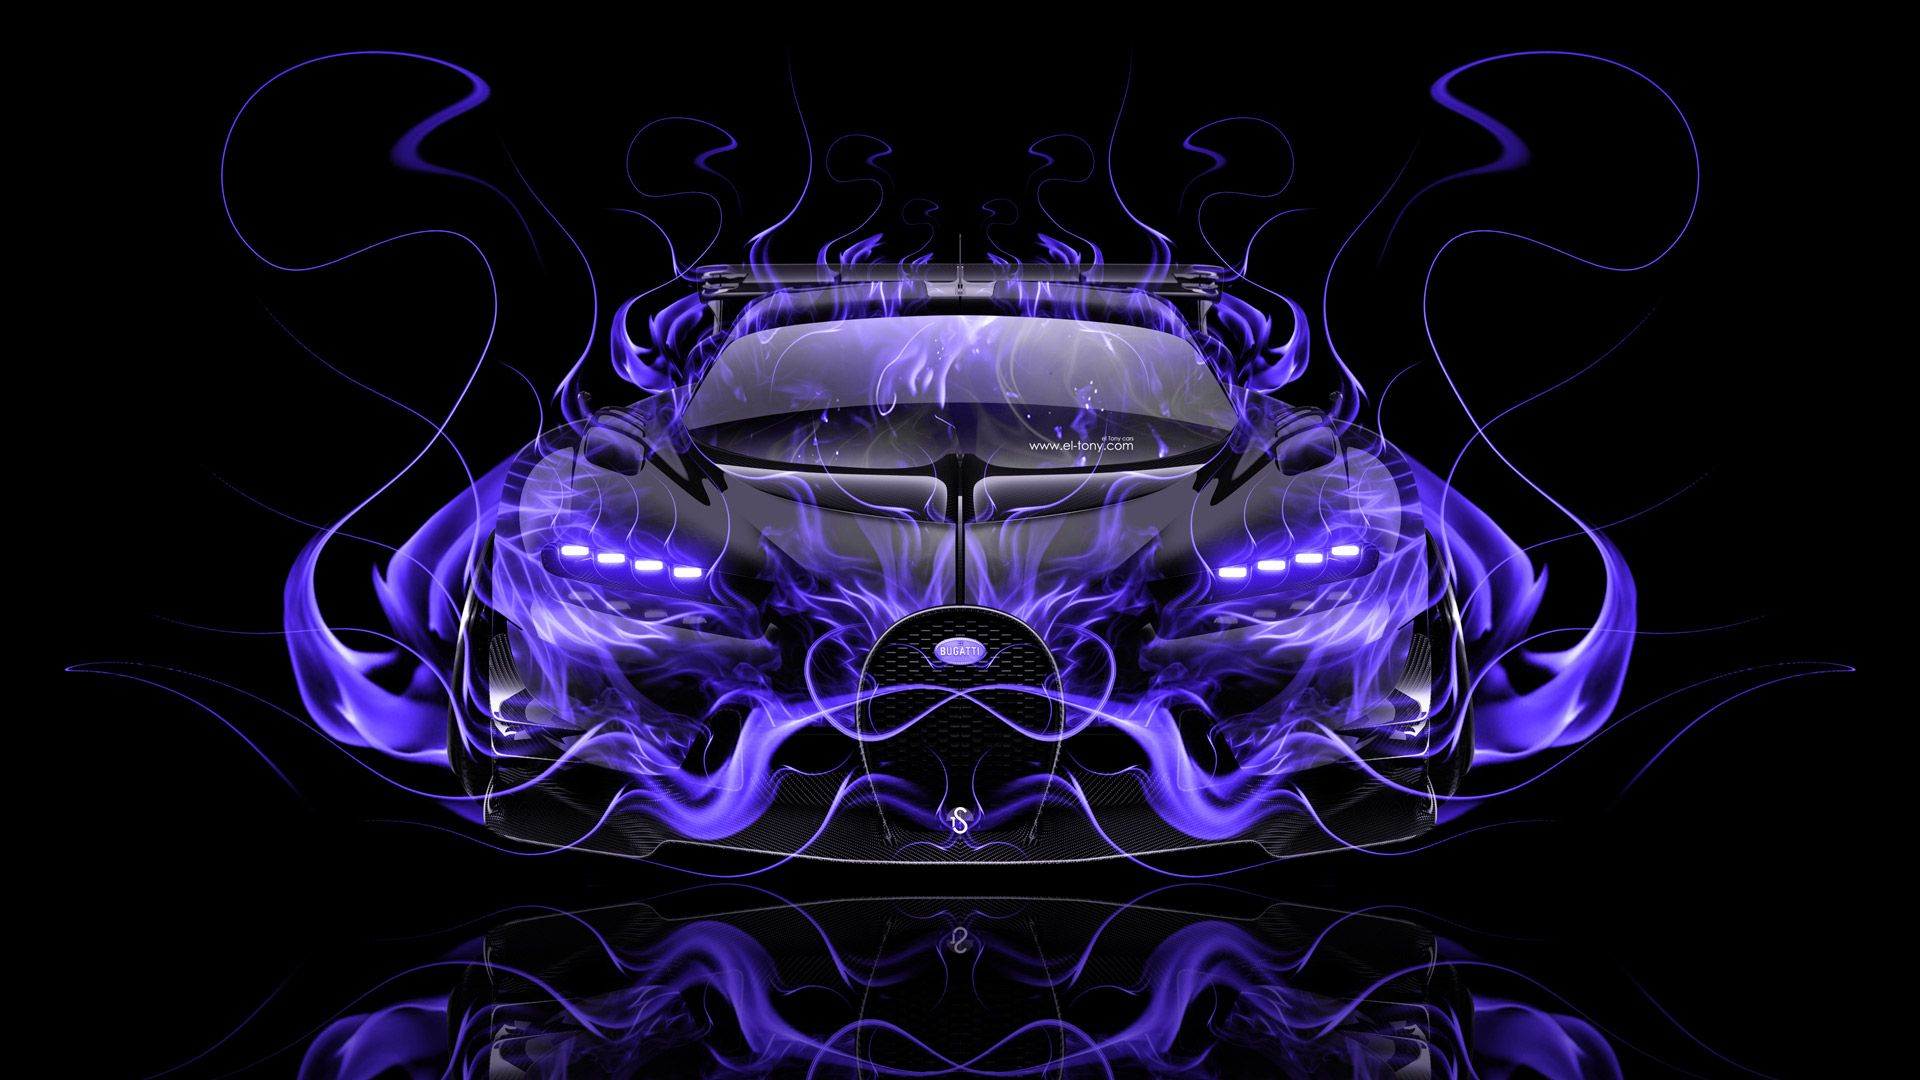 Mazda RX Vision Concept Side Super Fire Abstract Car 2015 Pink Violet Black Colors HD Wallpapers Design By Tony Kokhan Www.el Tony.com Image  (1u2026